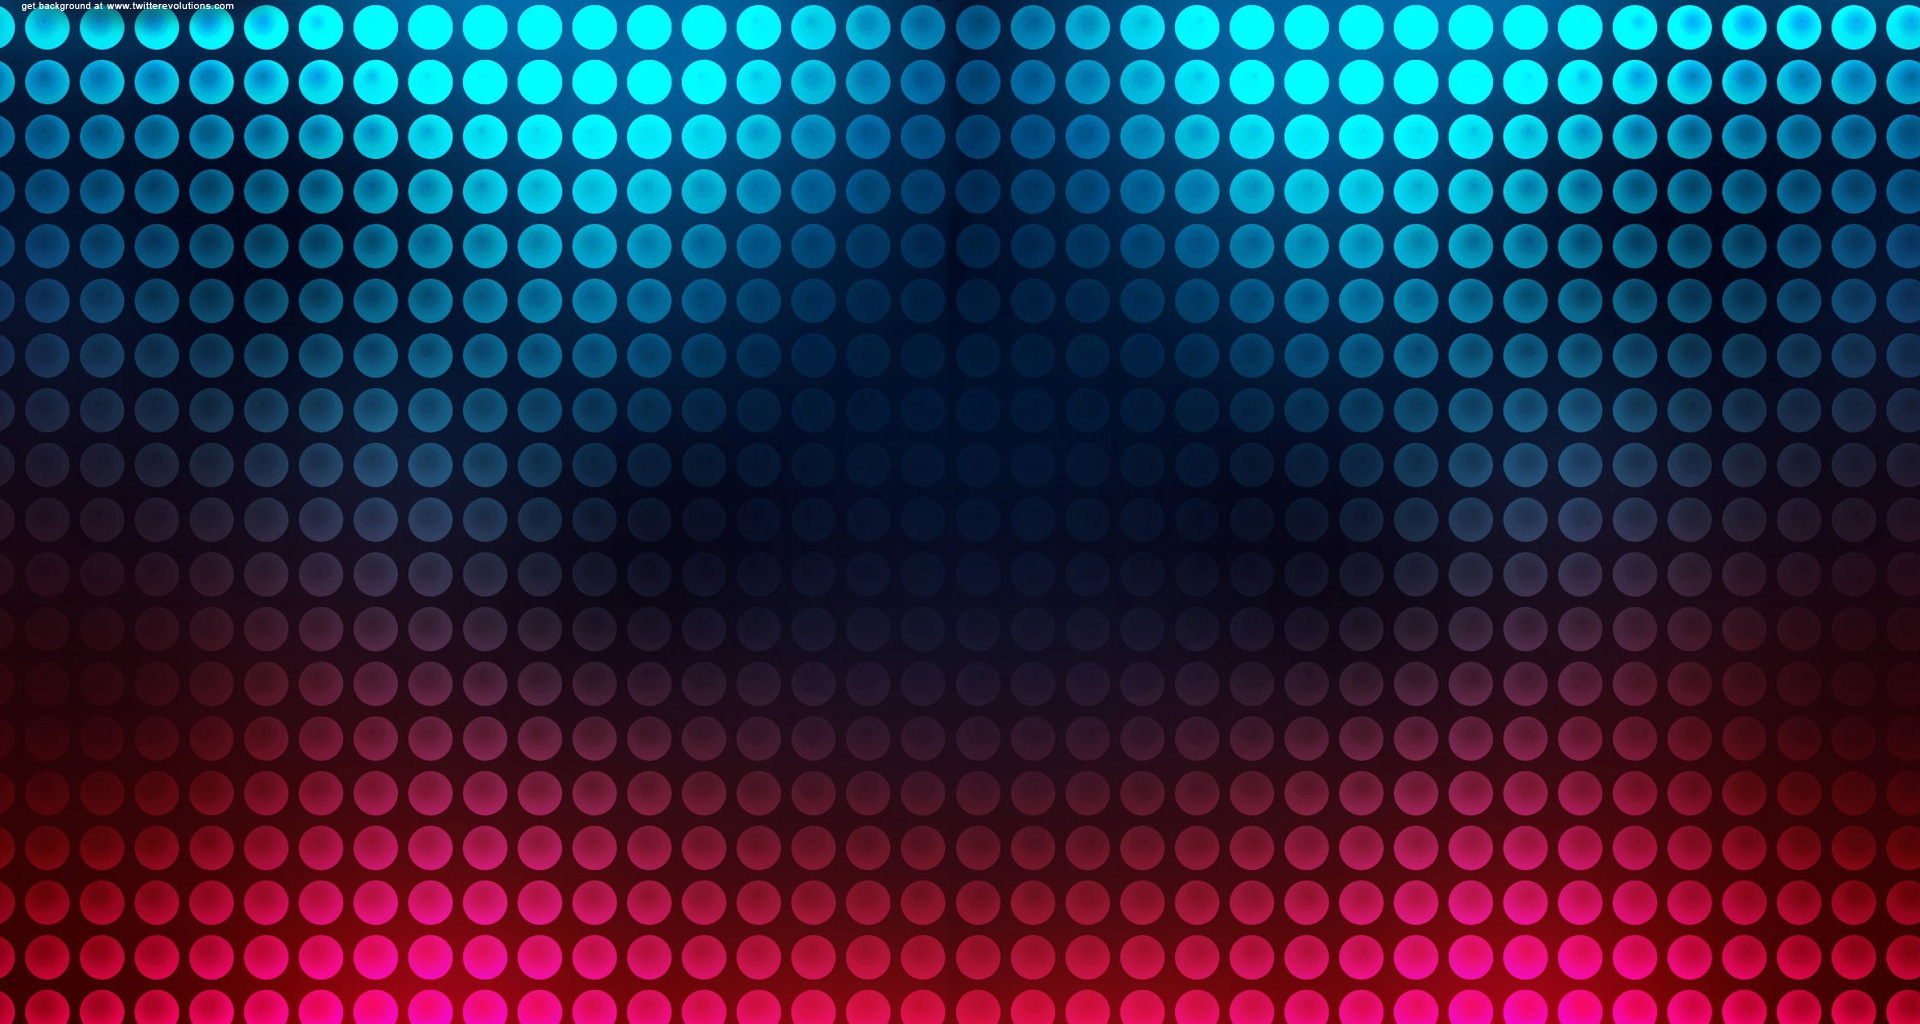 awesome-background-pattern-Lastest-Awesome-Pattern-Backgrounds-intended-for-awesome-back-wallpaper-wpc5802398